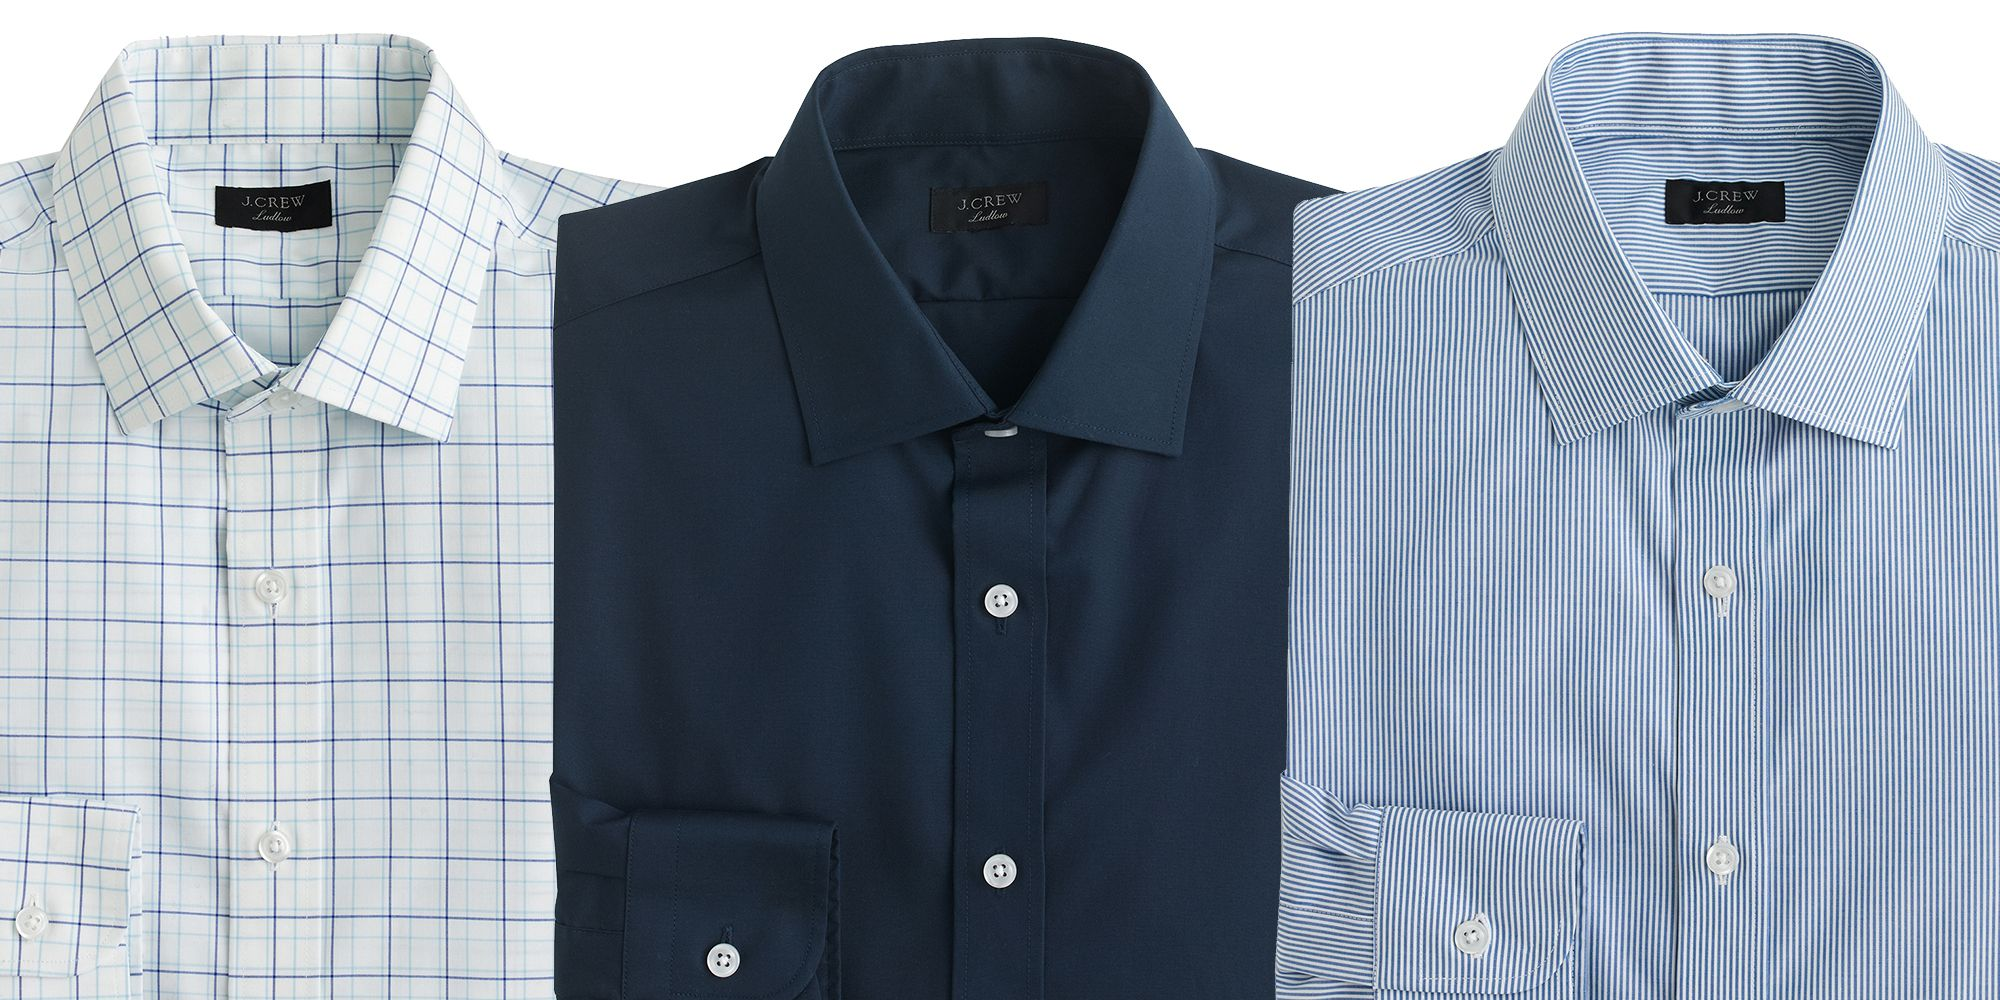 Jews New Dress Shirts Are Here To Save Your Workweek